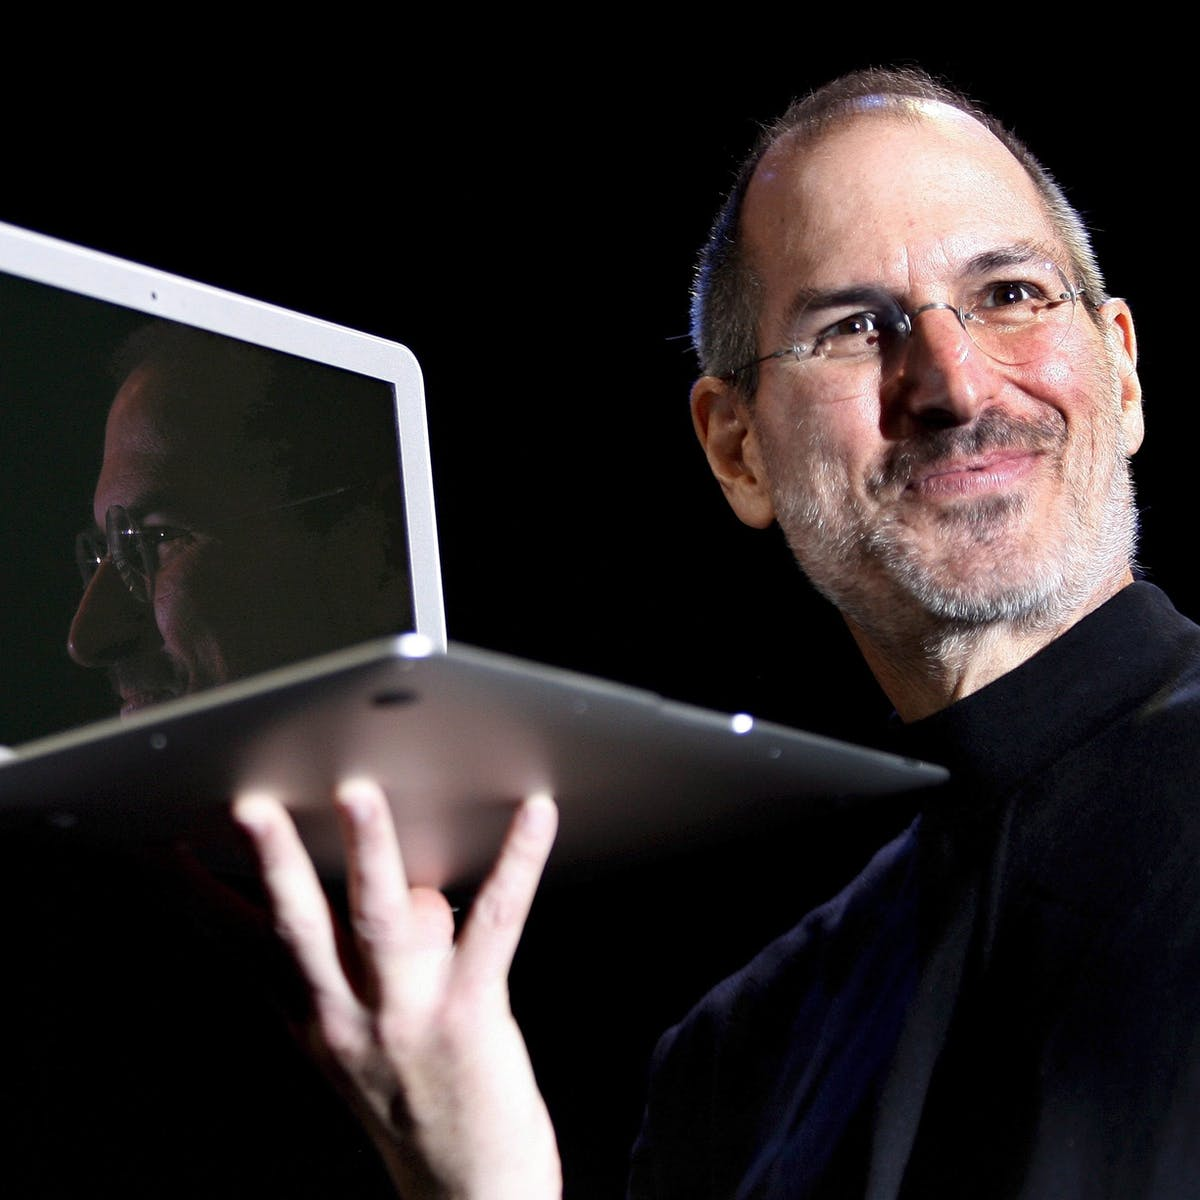 Will Steve Jobs Resignation Shake Apple To Its Core